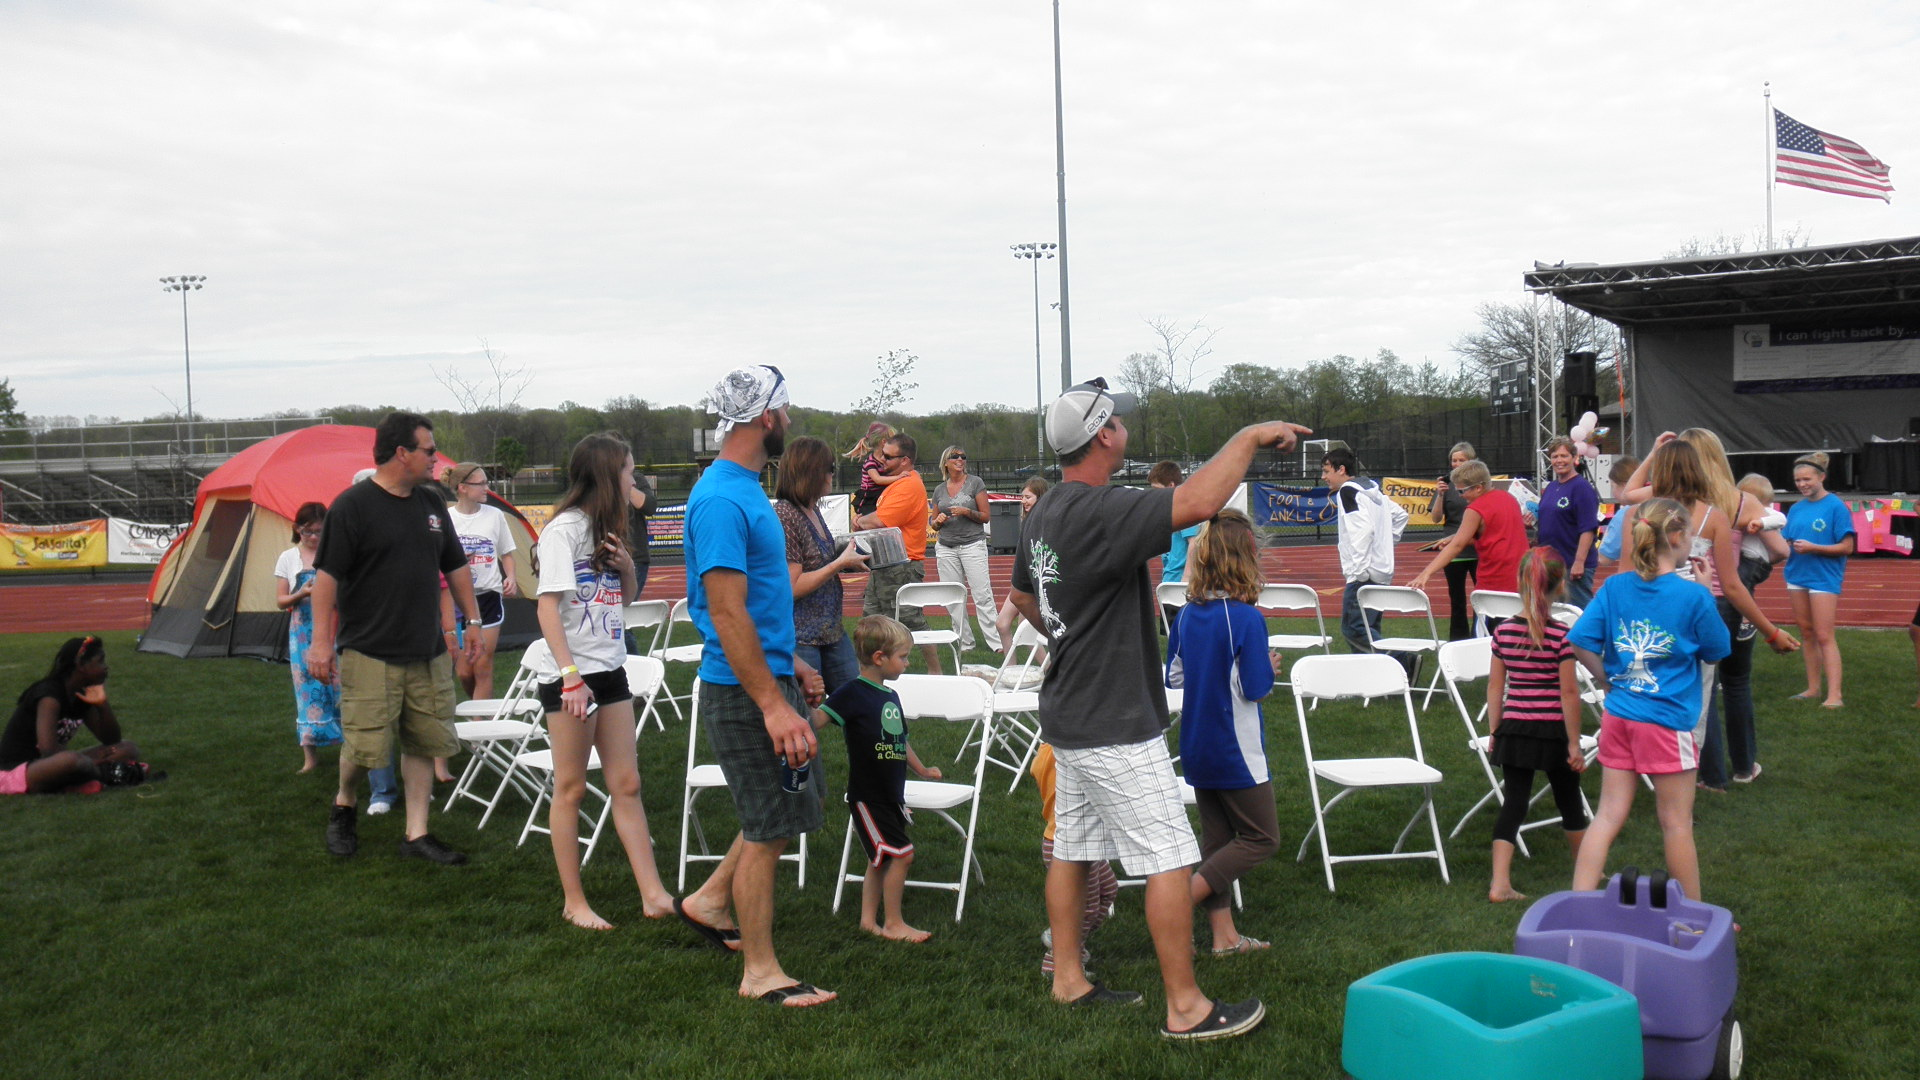 People walking around a circle of chairs for a cake walk.